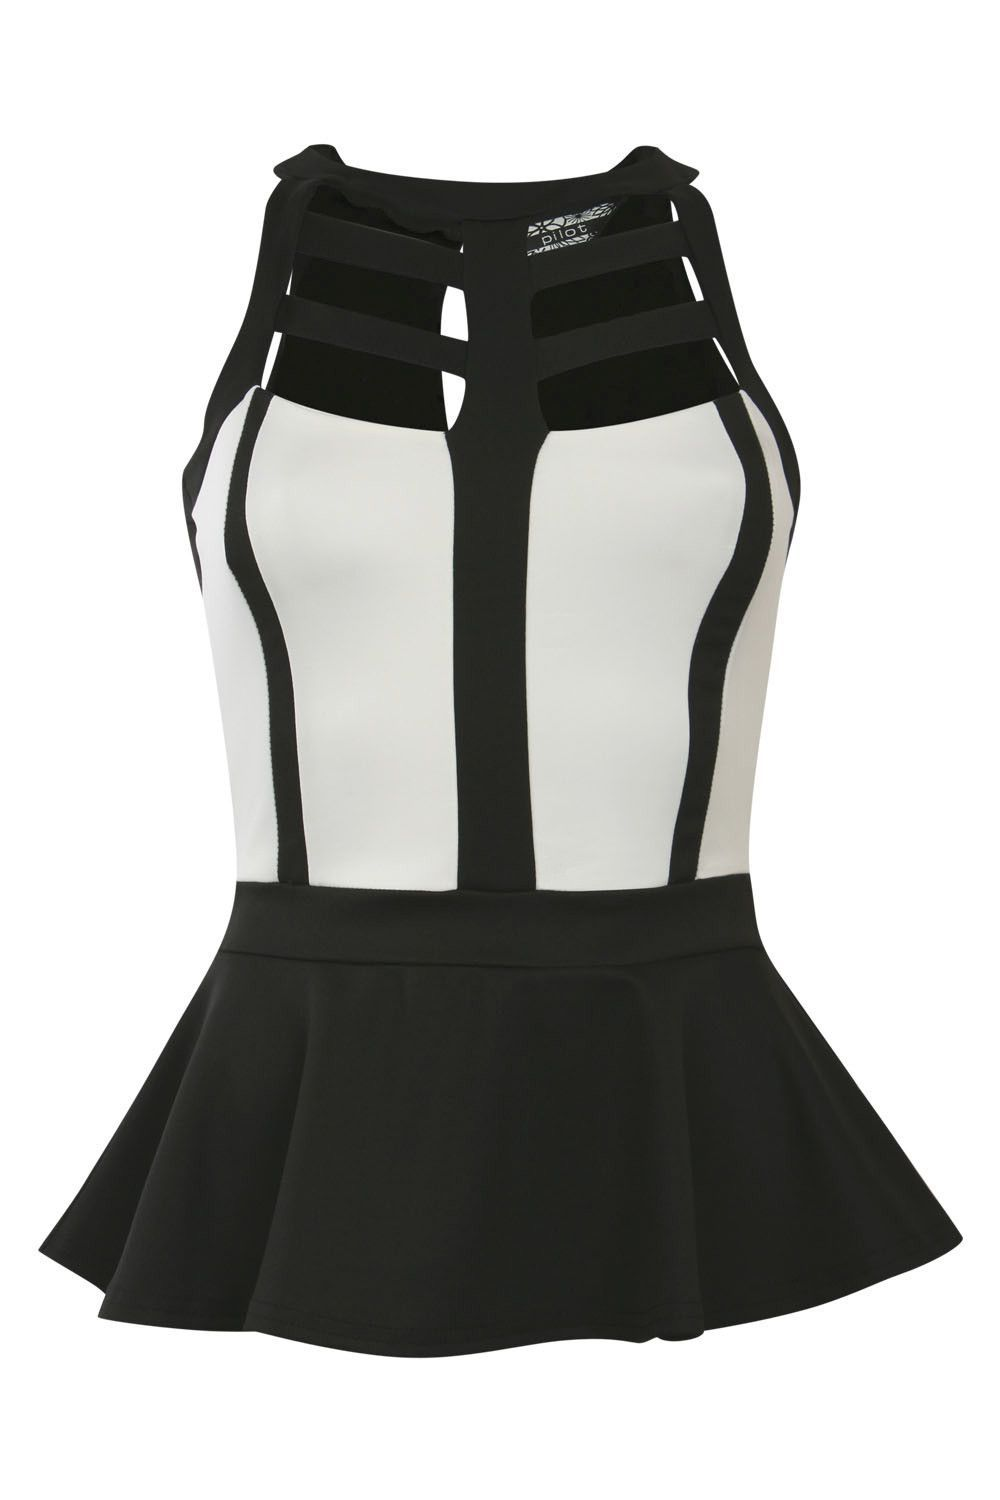 Caged Monochrome Peplum Top in Black